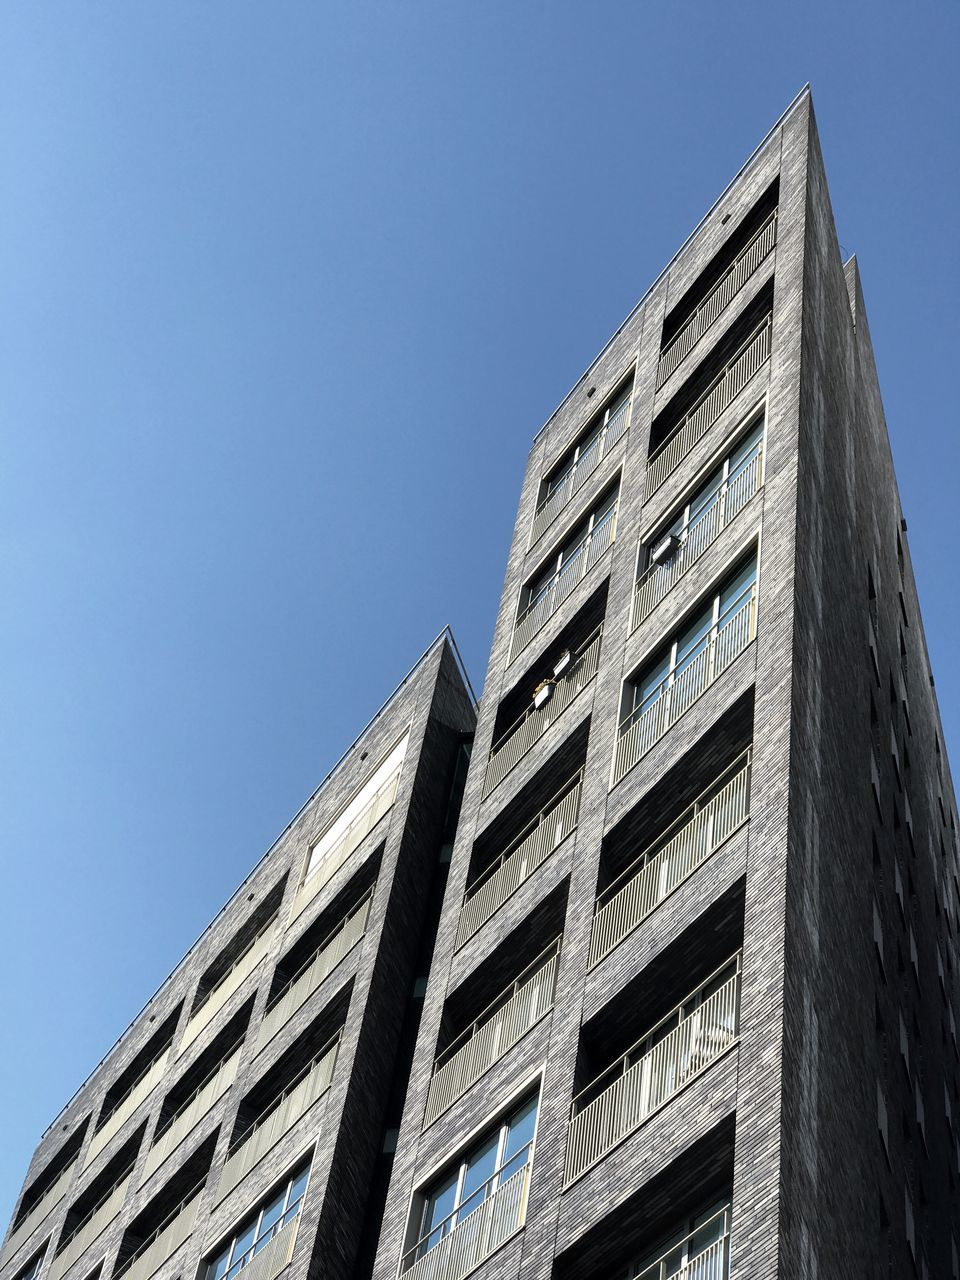 architecture, built structure, low angle view, building exterior, modern, day, clear sky, blue, skyscraper, outdoors, no people, sky, city